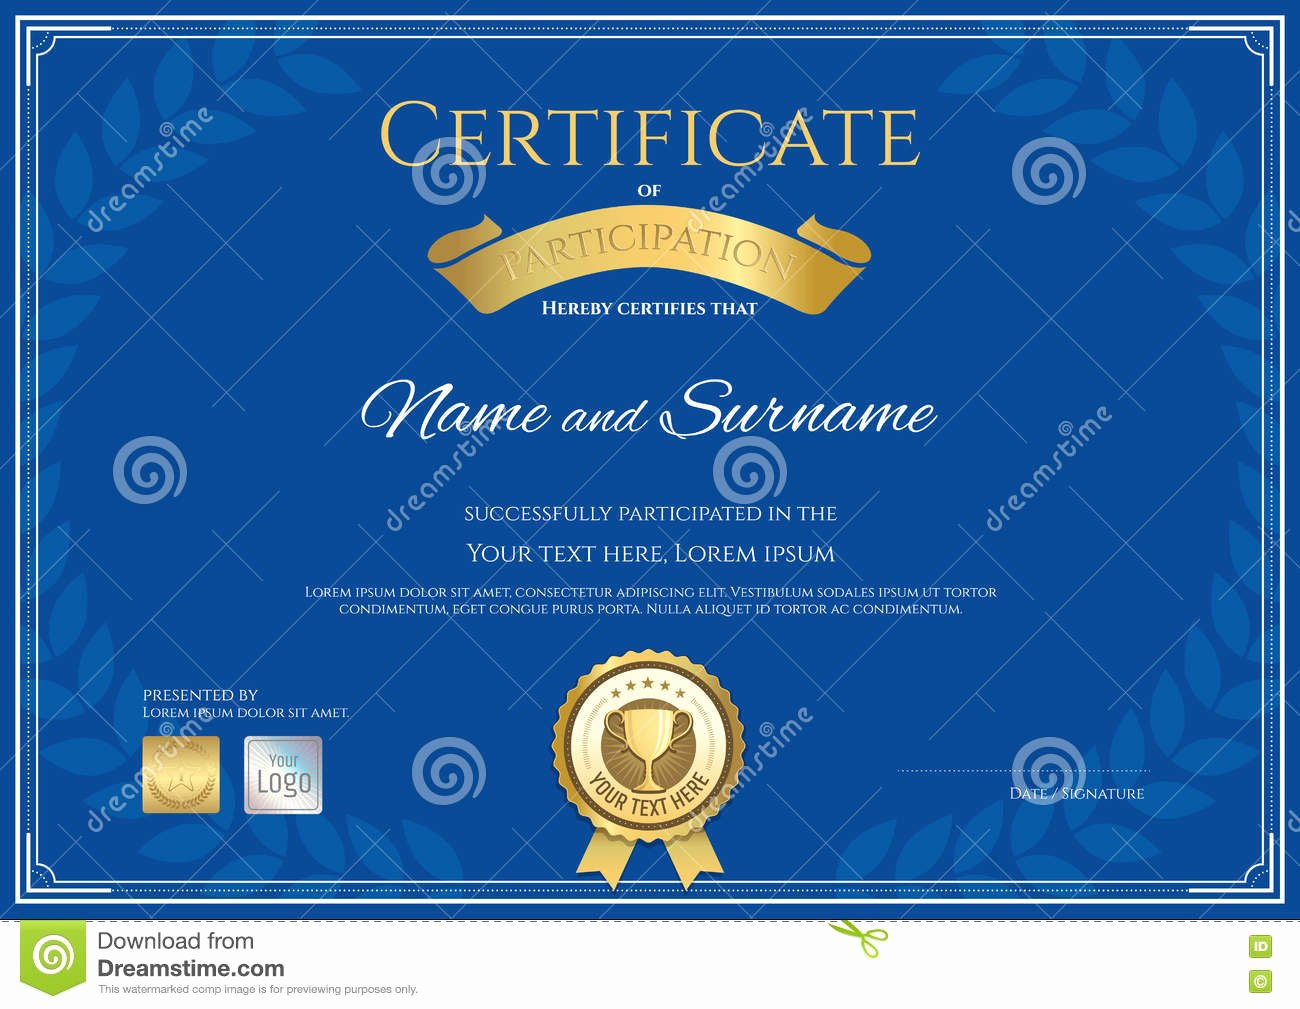 Dealer Participation Certification form New Certificate Participation Template In Gold Color Vector